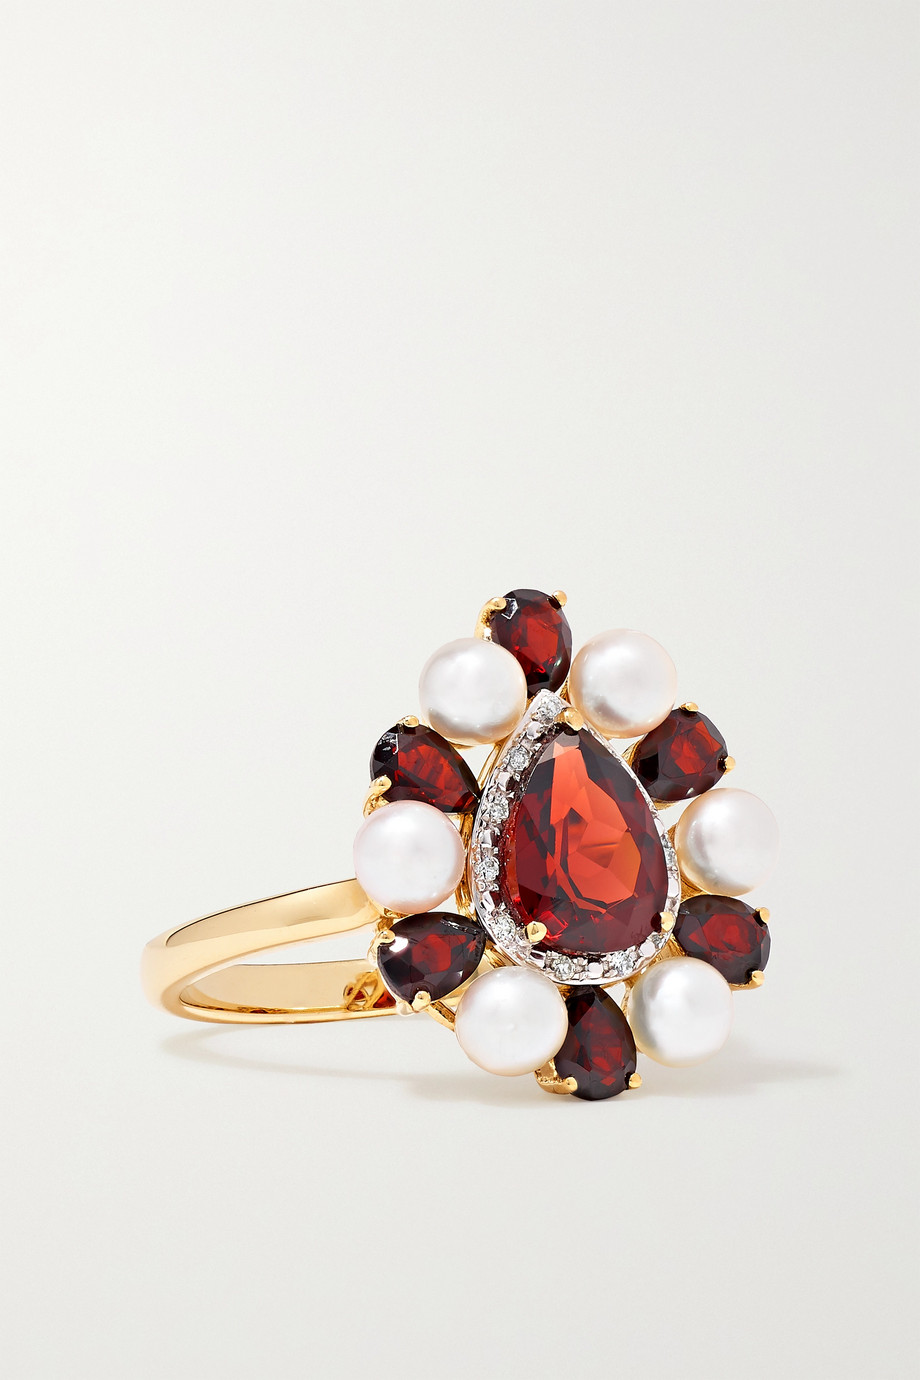 Anissa Kermiche Woman in Red 14-karat gold multi-stone ring